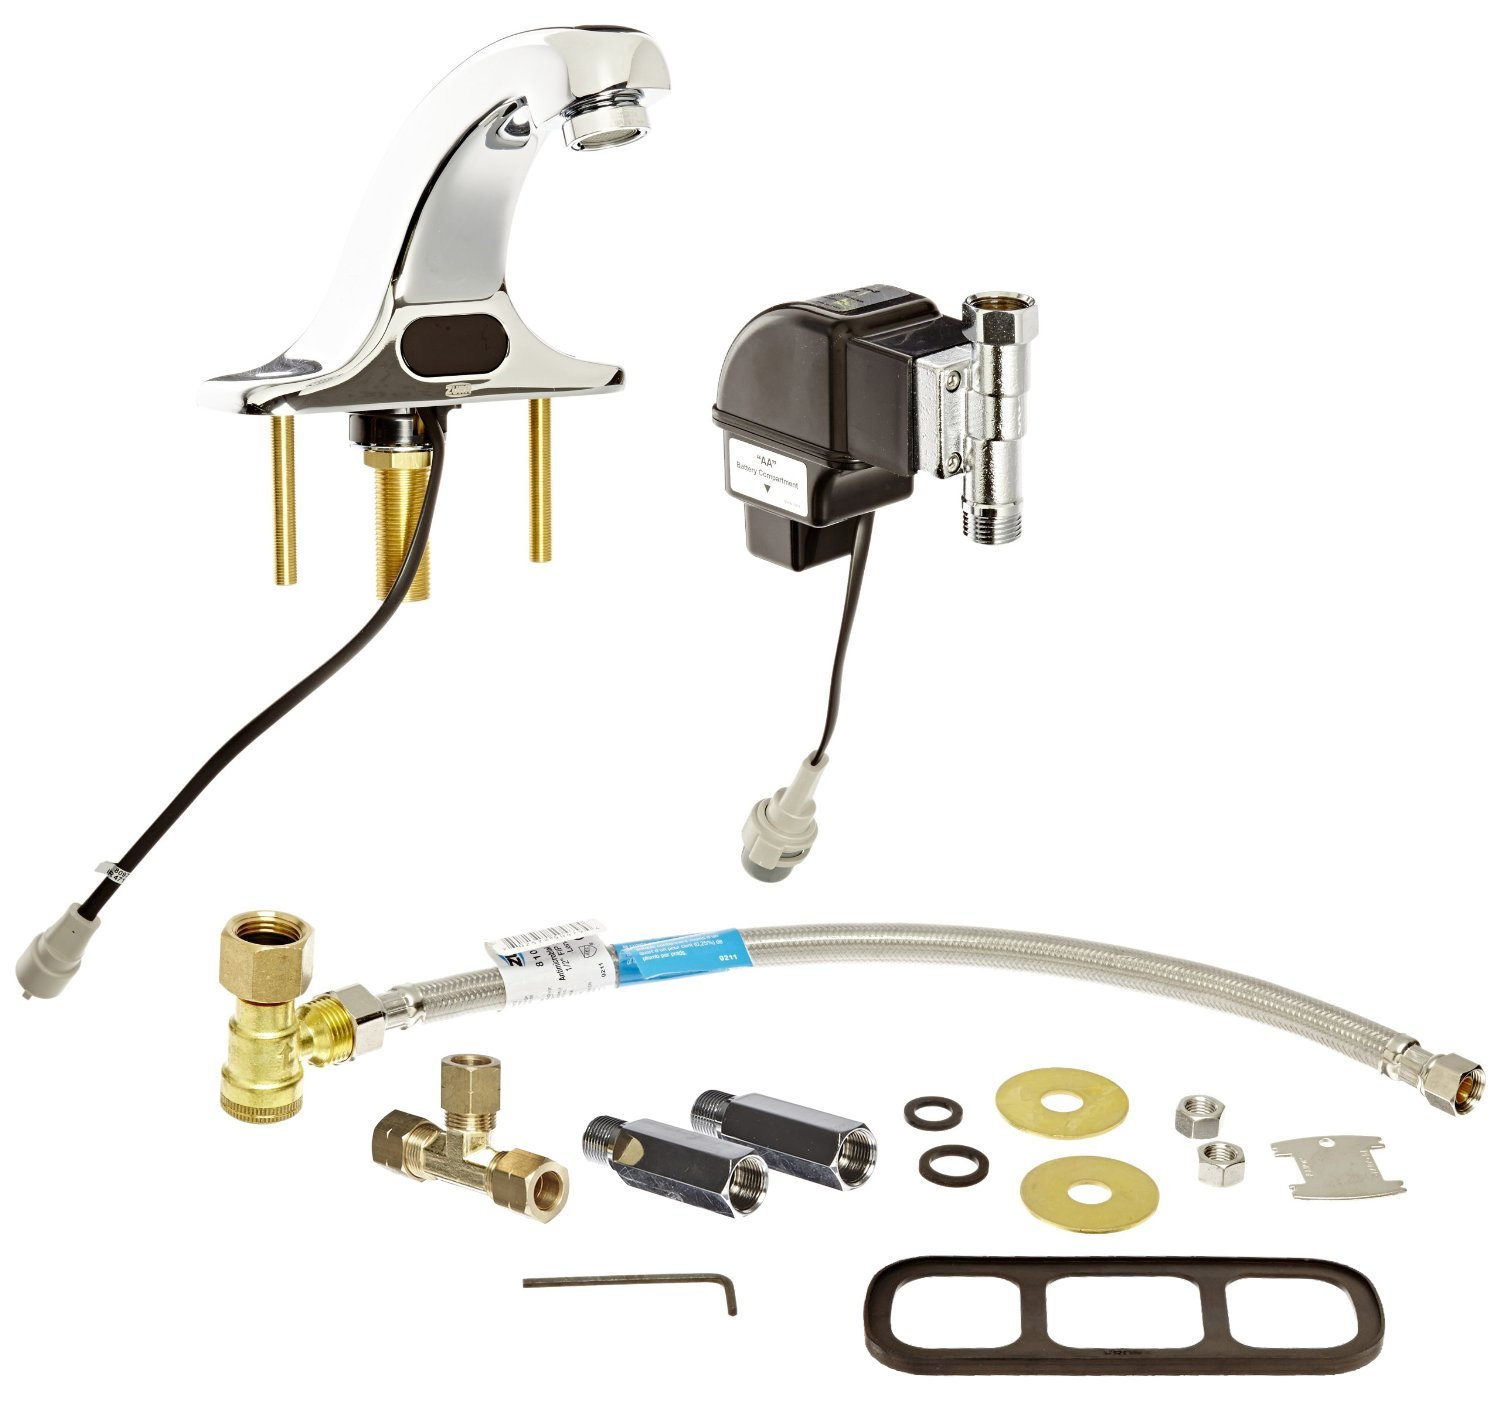 Zurn Aquasense Battery Powered Sensor Operated Bathroom Faucet With Mixing Tee, 4 In. Integral Trim Plate, Chrome, Lead Free